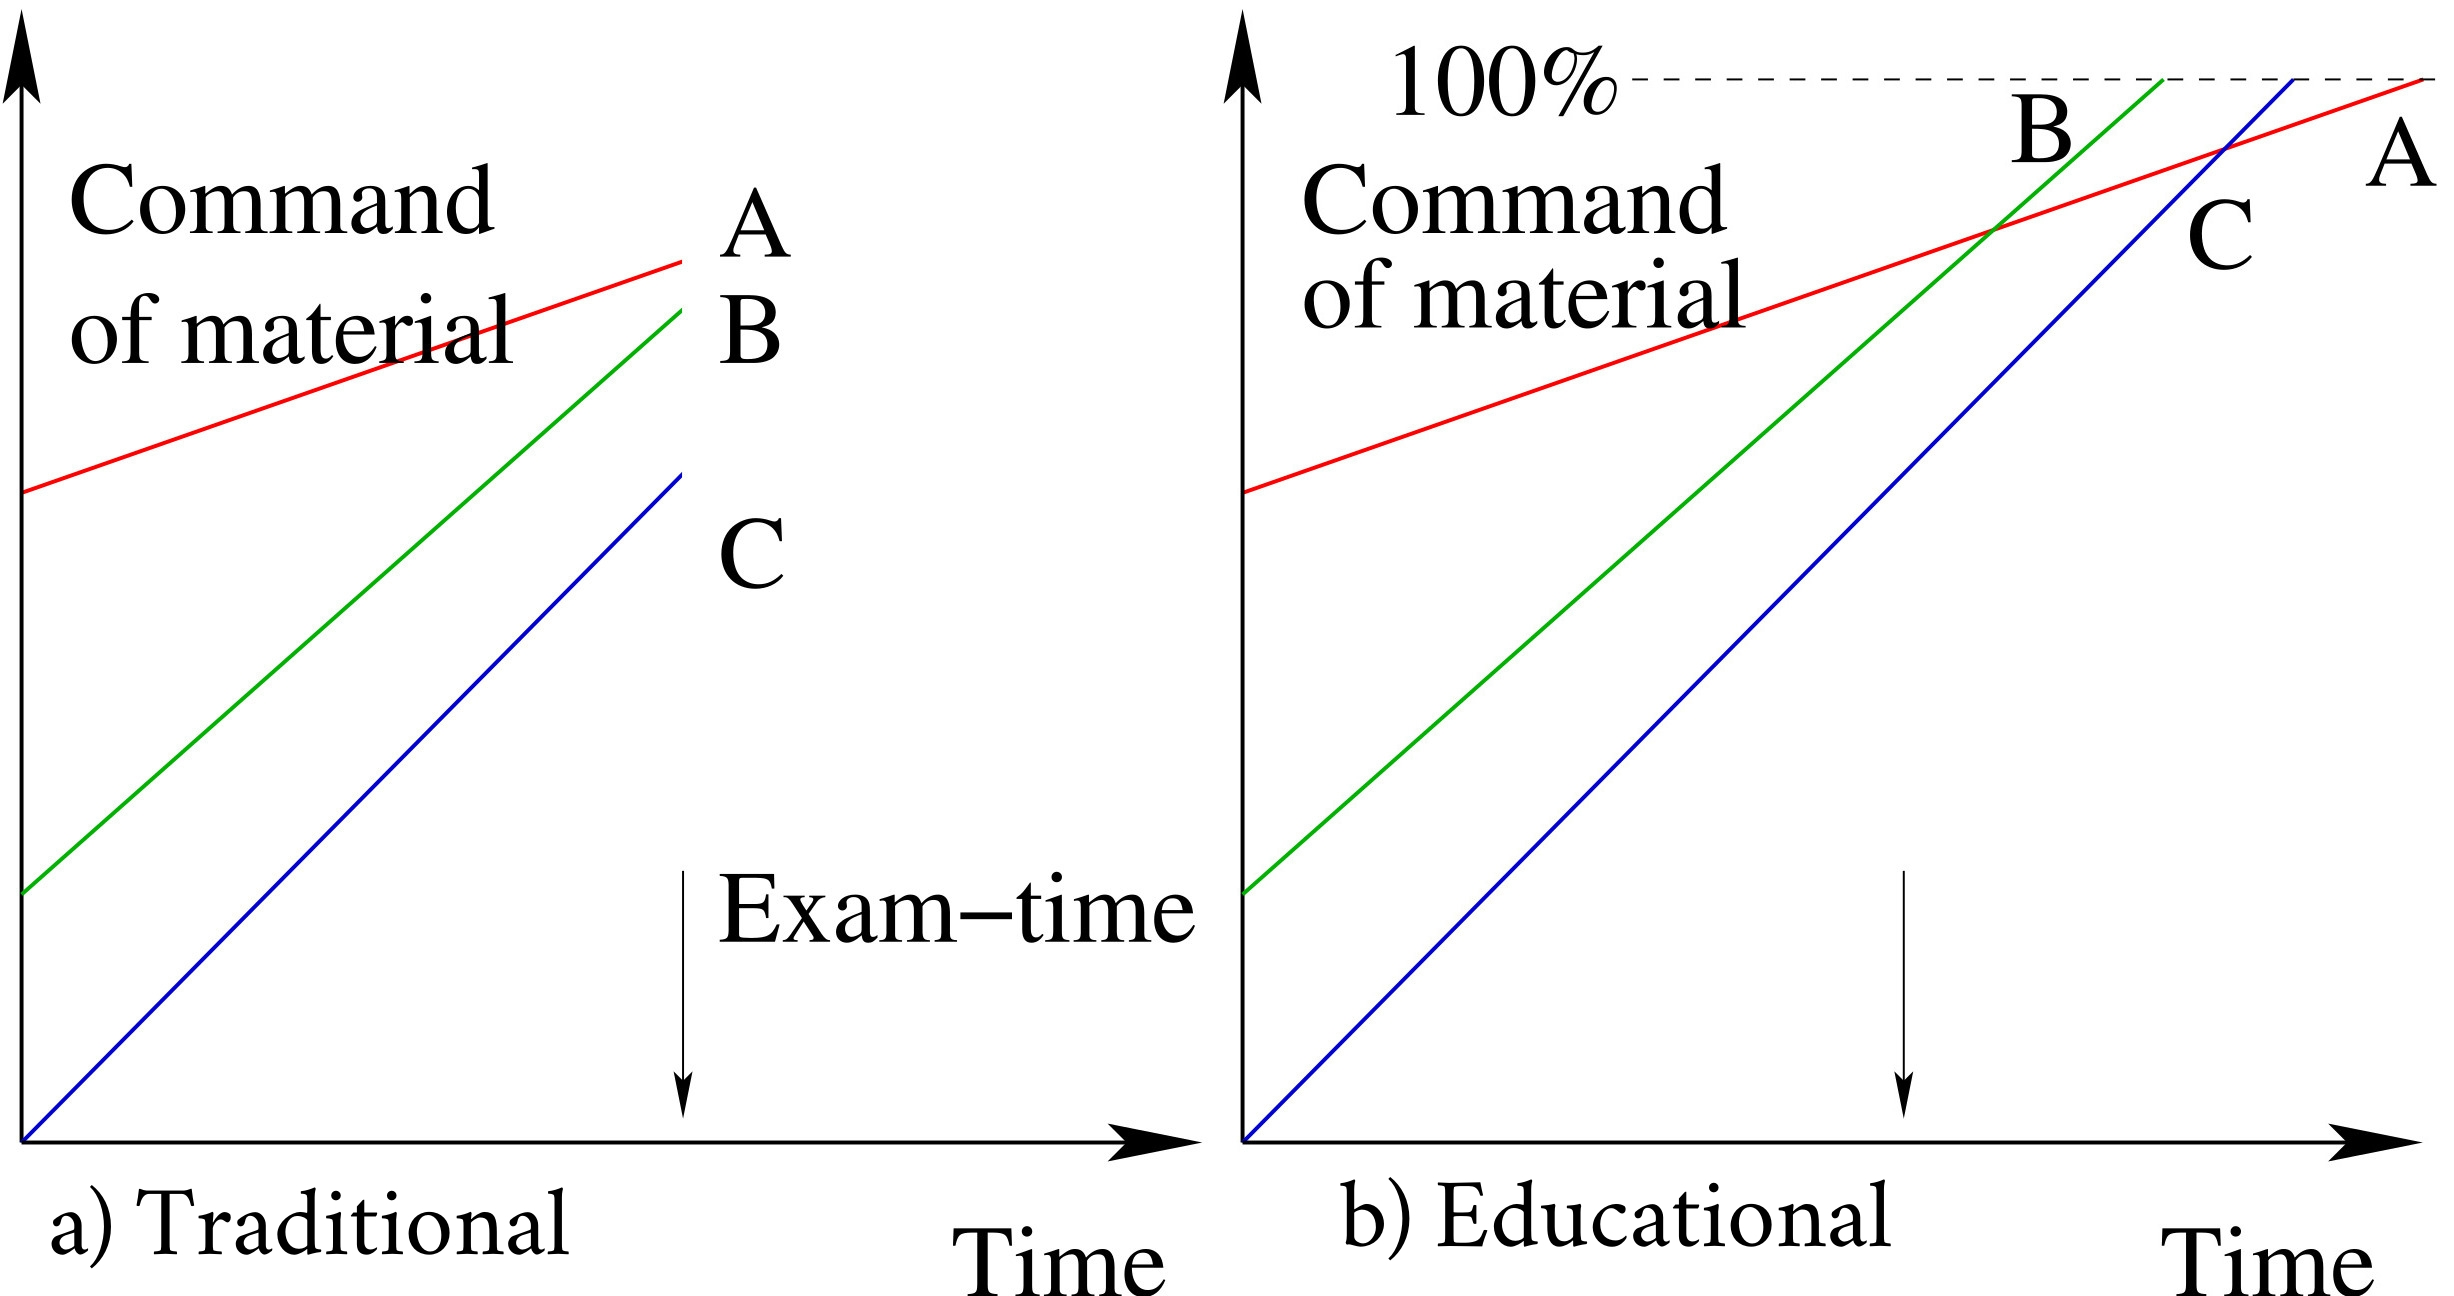 Figure 2: Everyone can get an A, regardless of learning rate, if their education is not halted by exams. Traditional system on the left, with an educational system on the right.